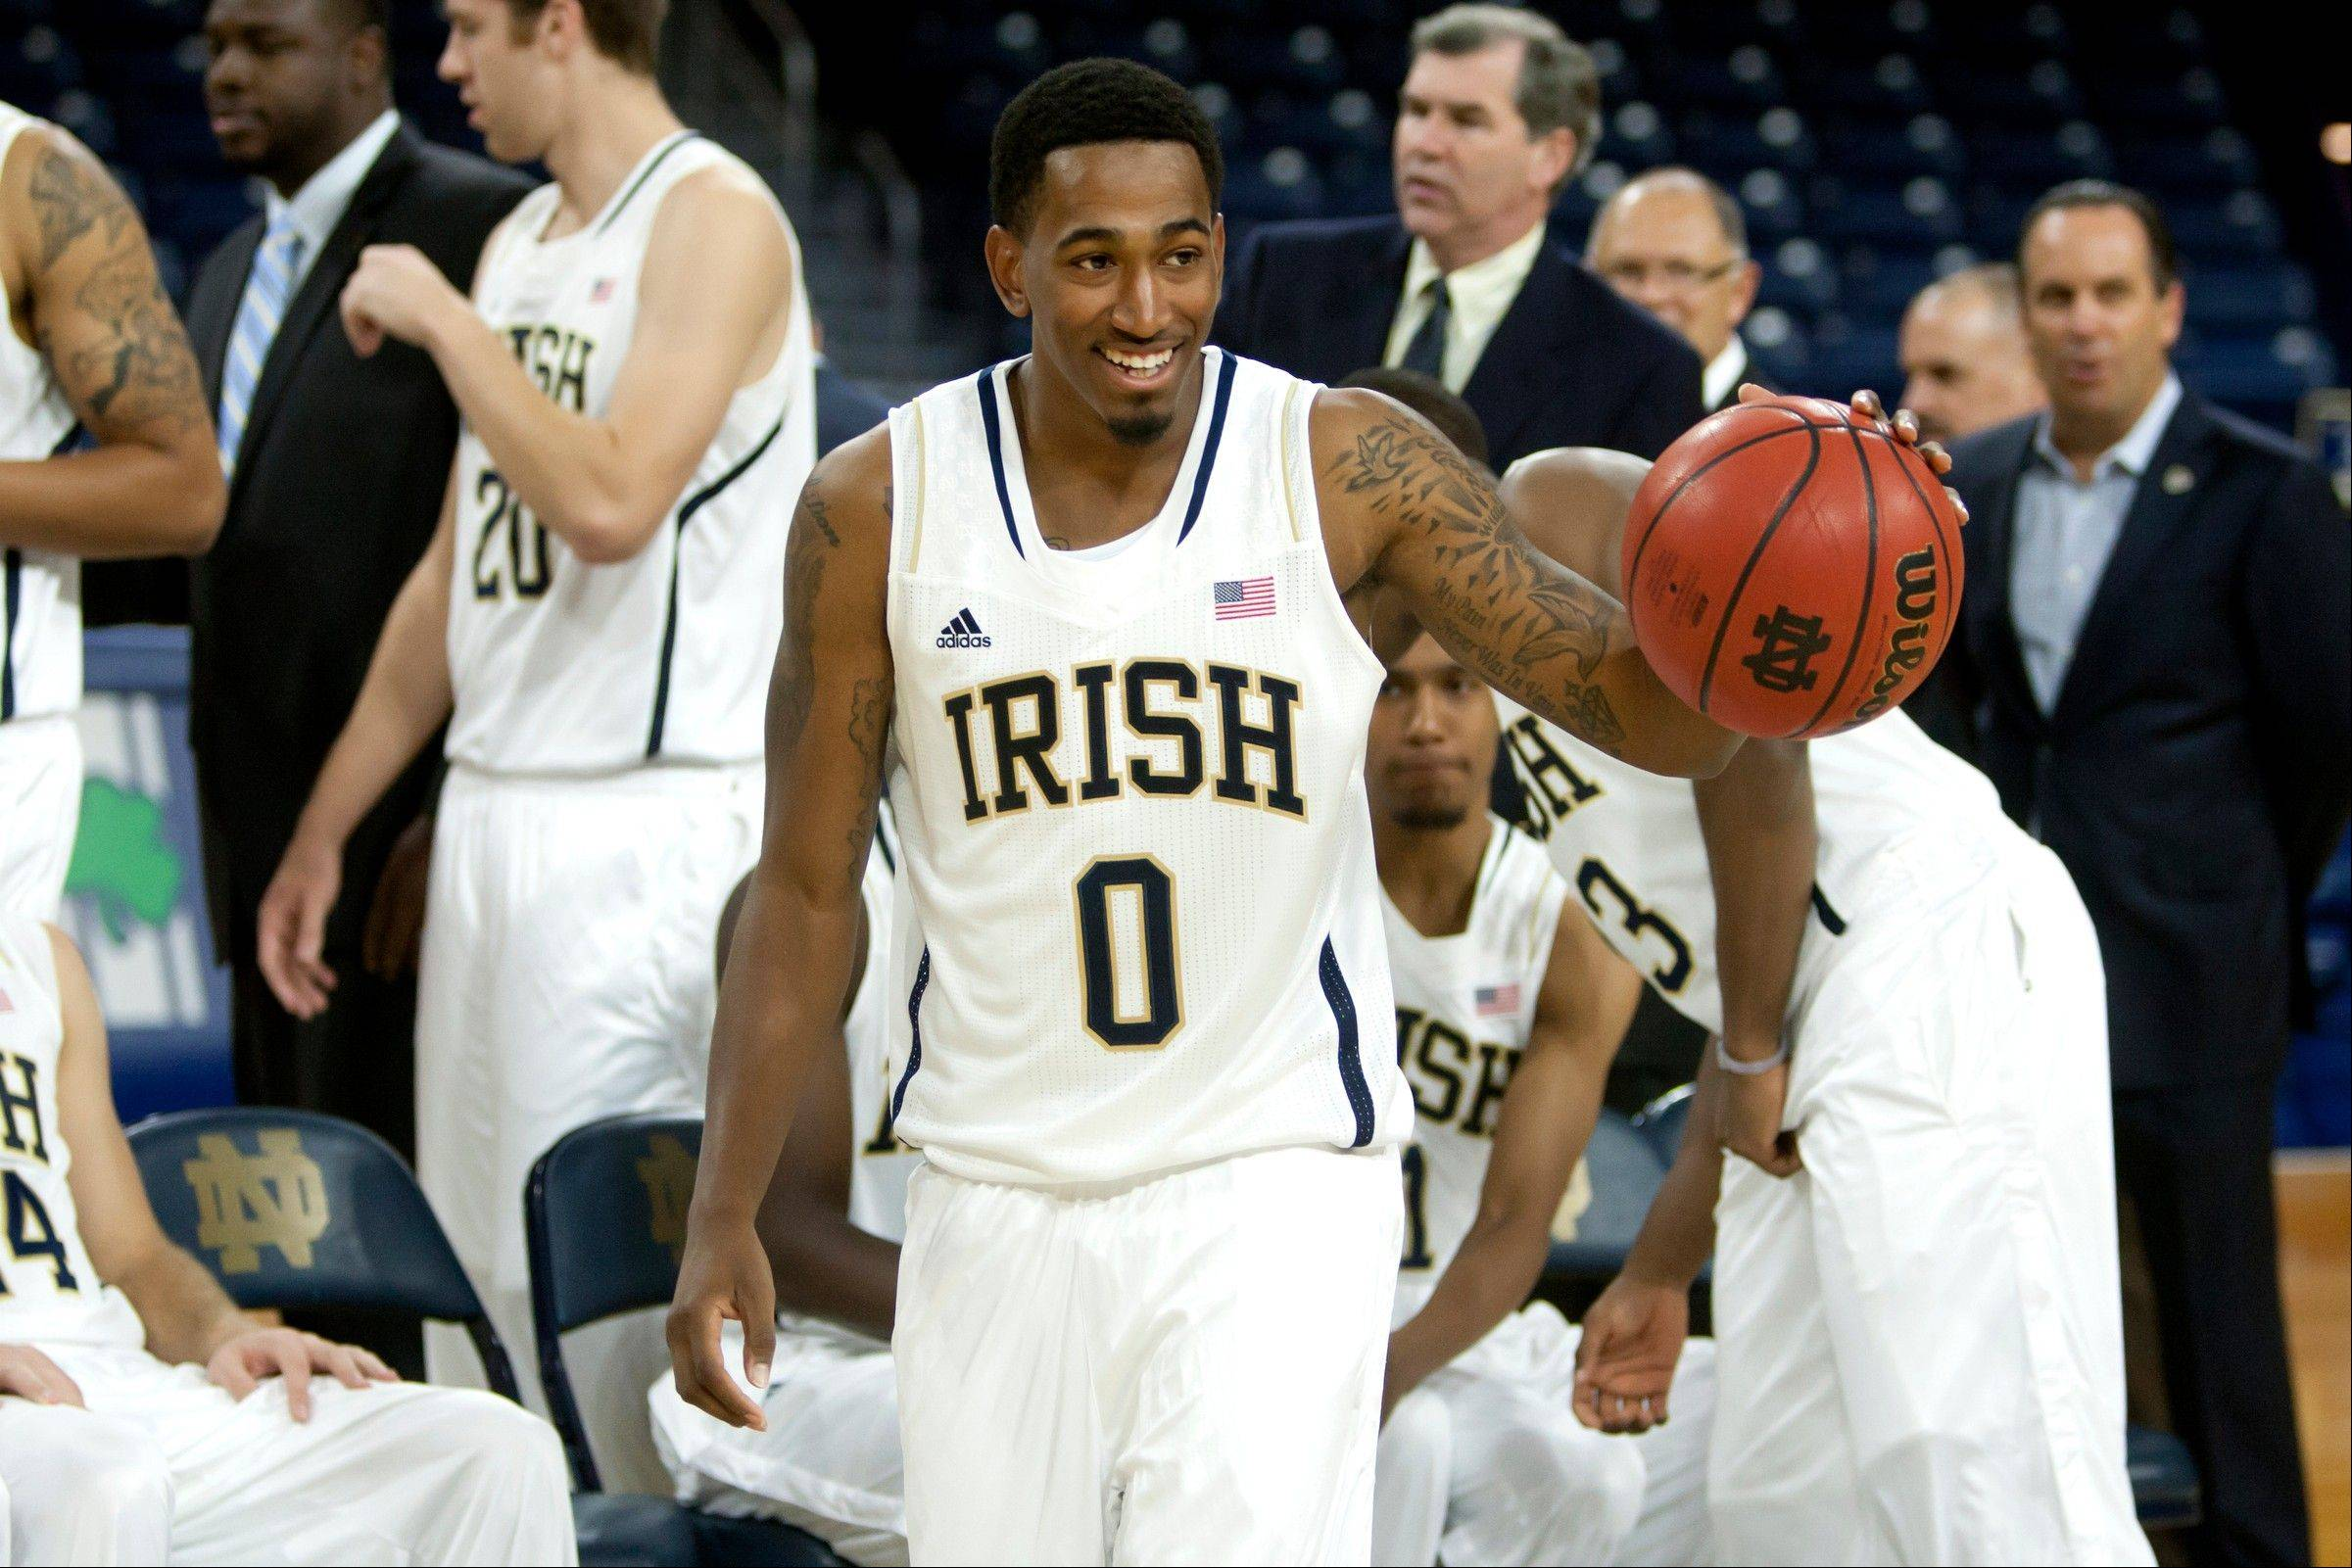 Notre Dame guard Eric Atkins dribbles after an official photograph during the team's media day on Wednesday in South Bend, Ind.